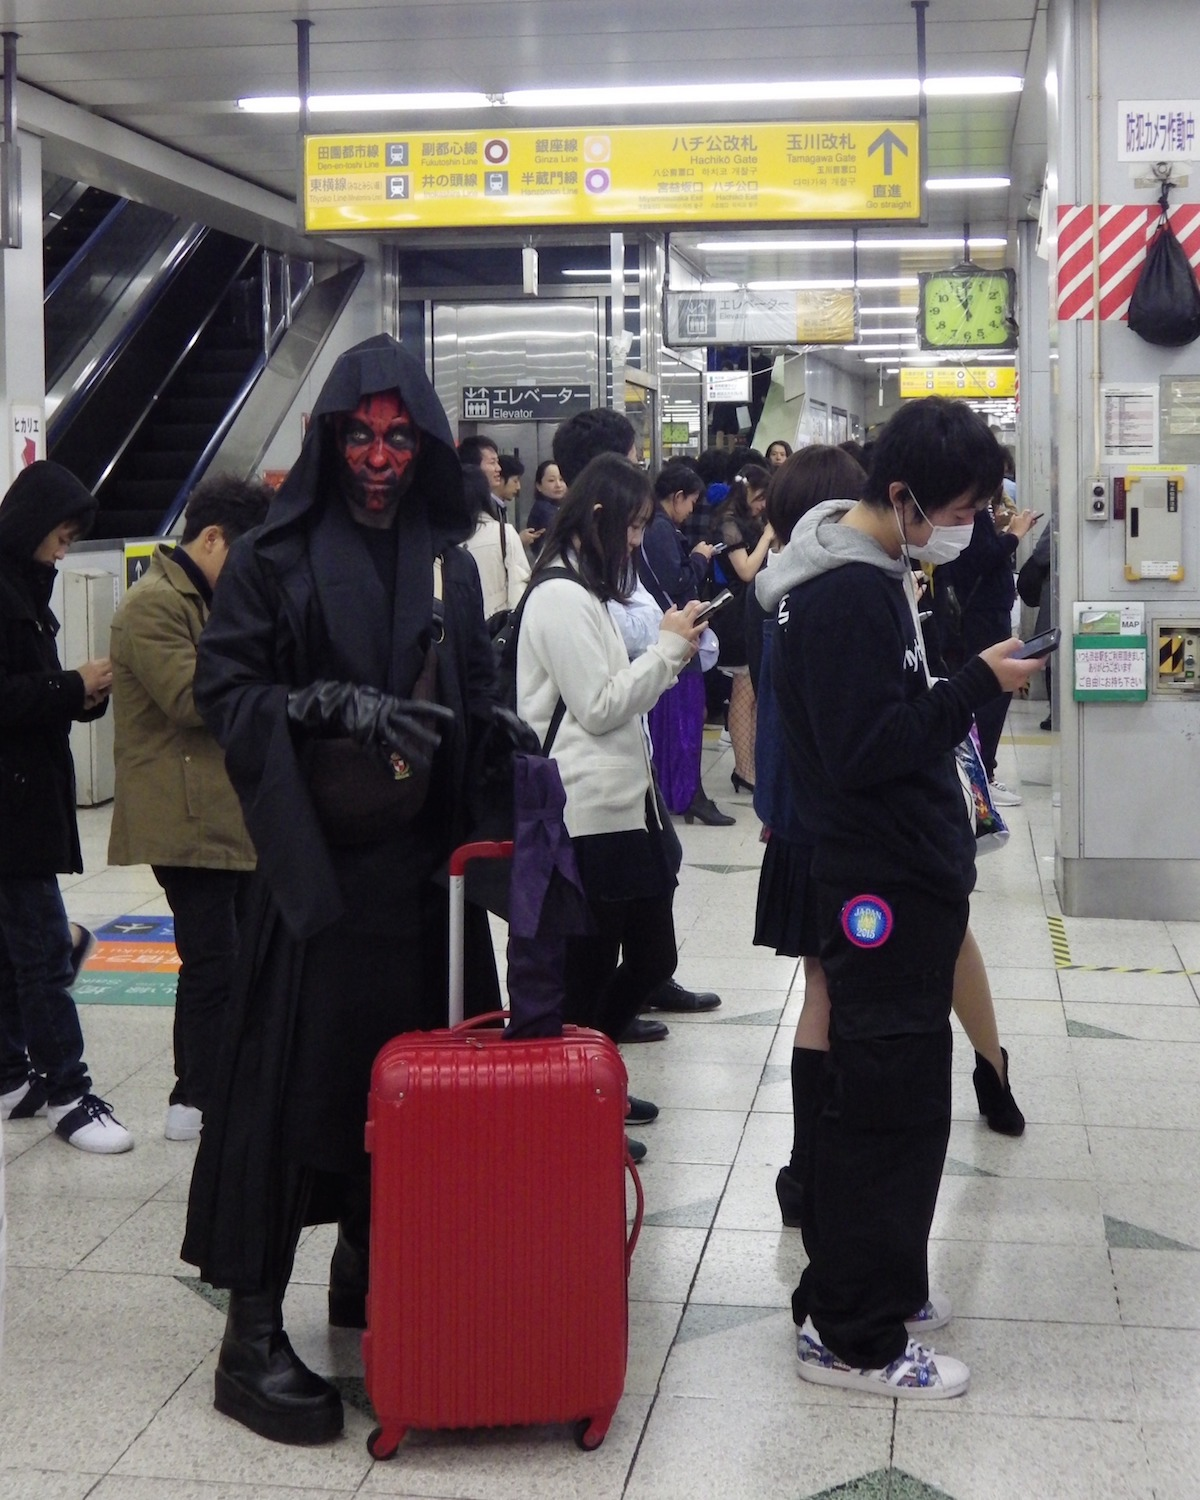 Cosplayer dressed as Darth Maul, waiting to catch a JR Yamanote Line train in Shibuya Station, on Halloween Night 2015.